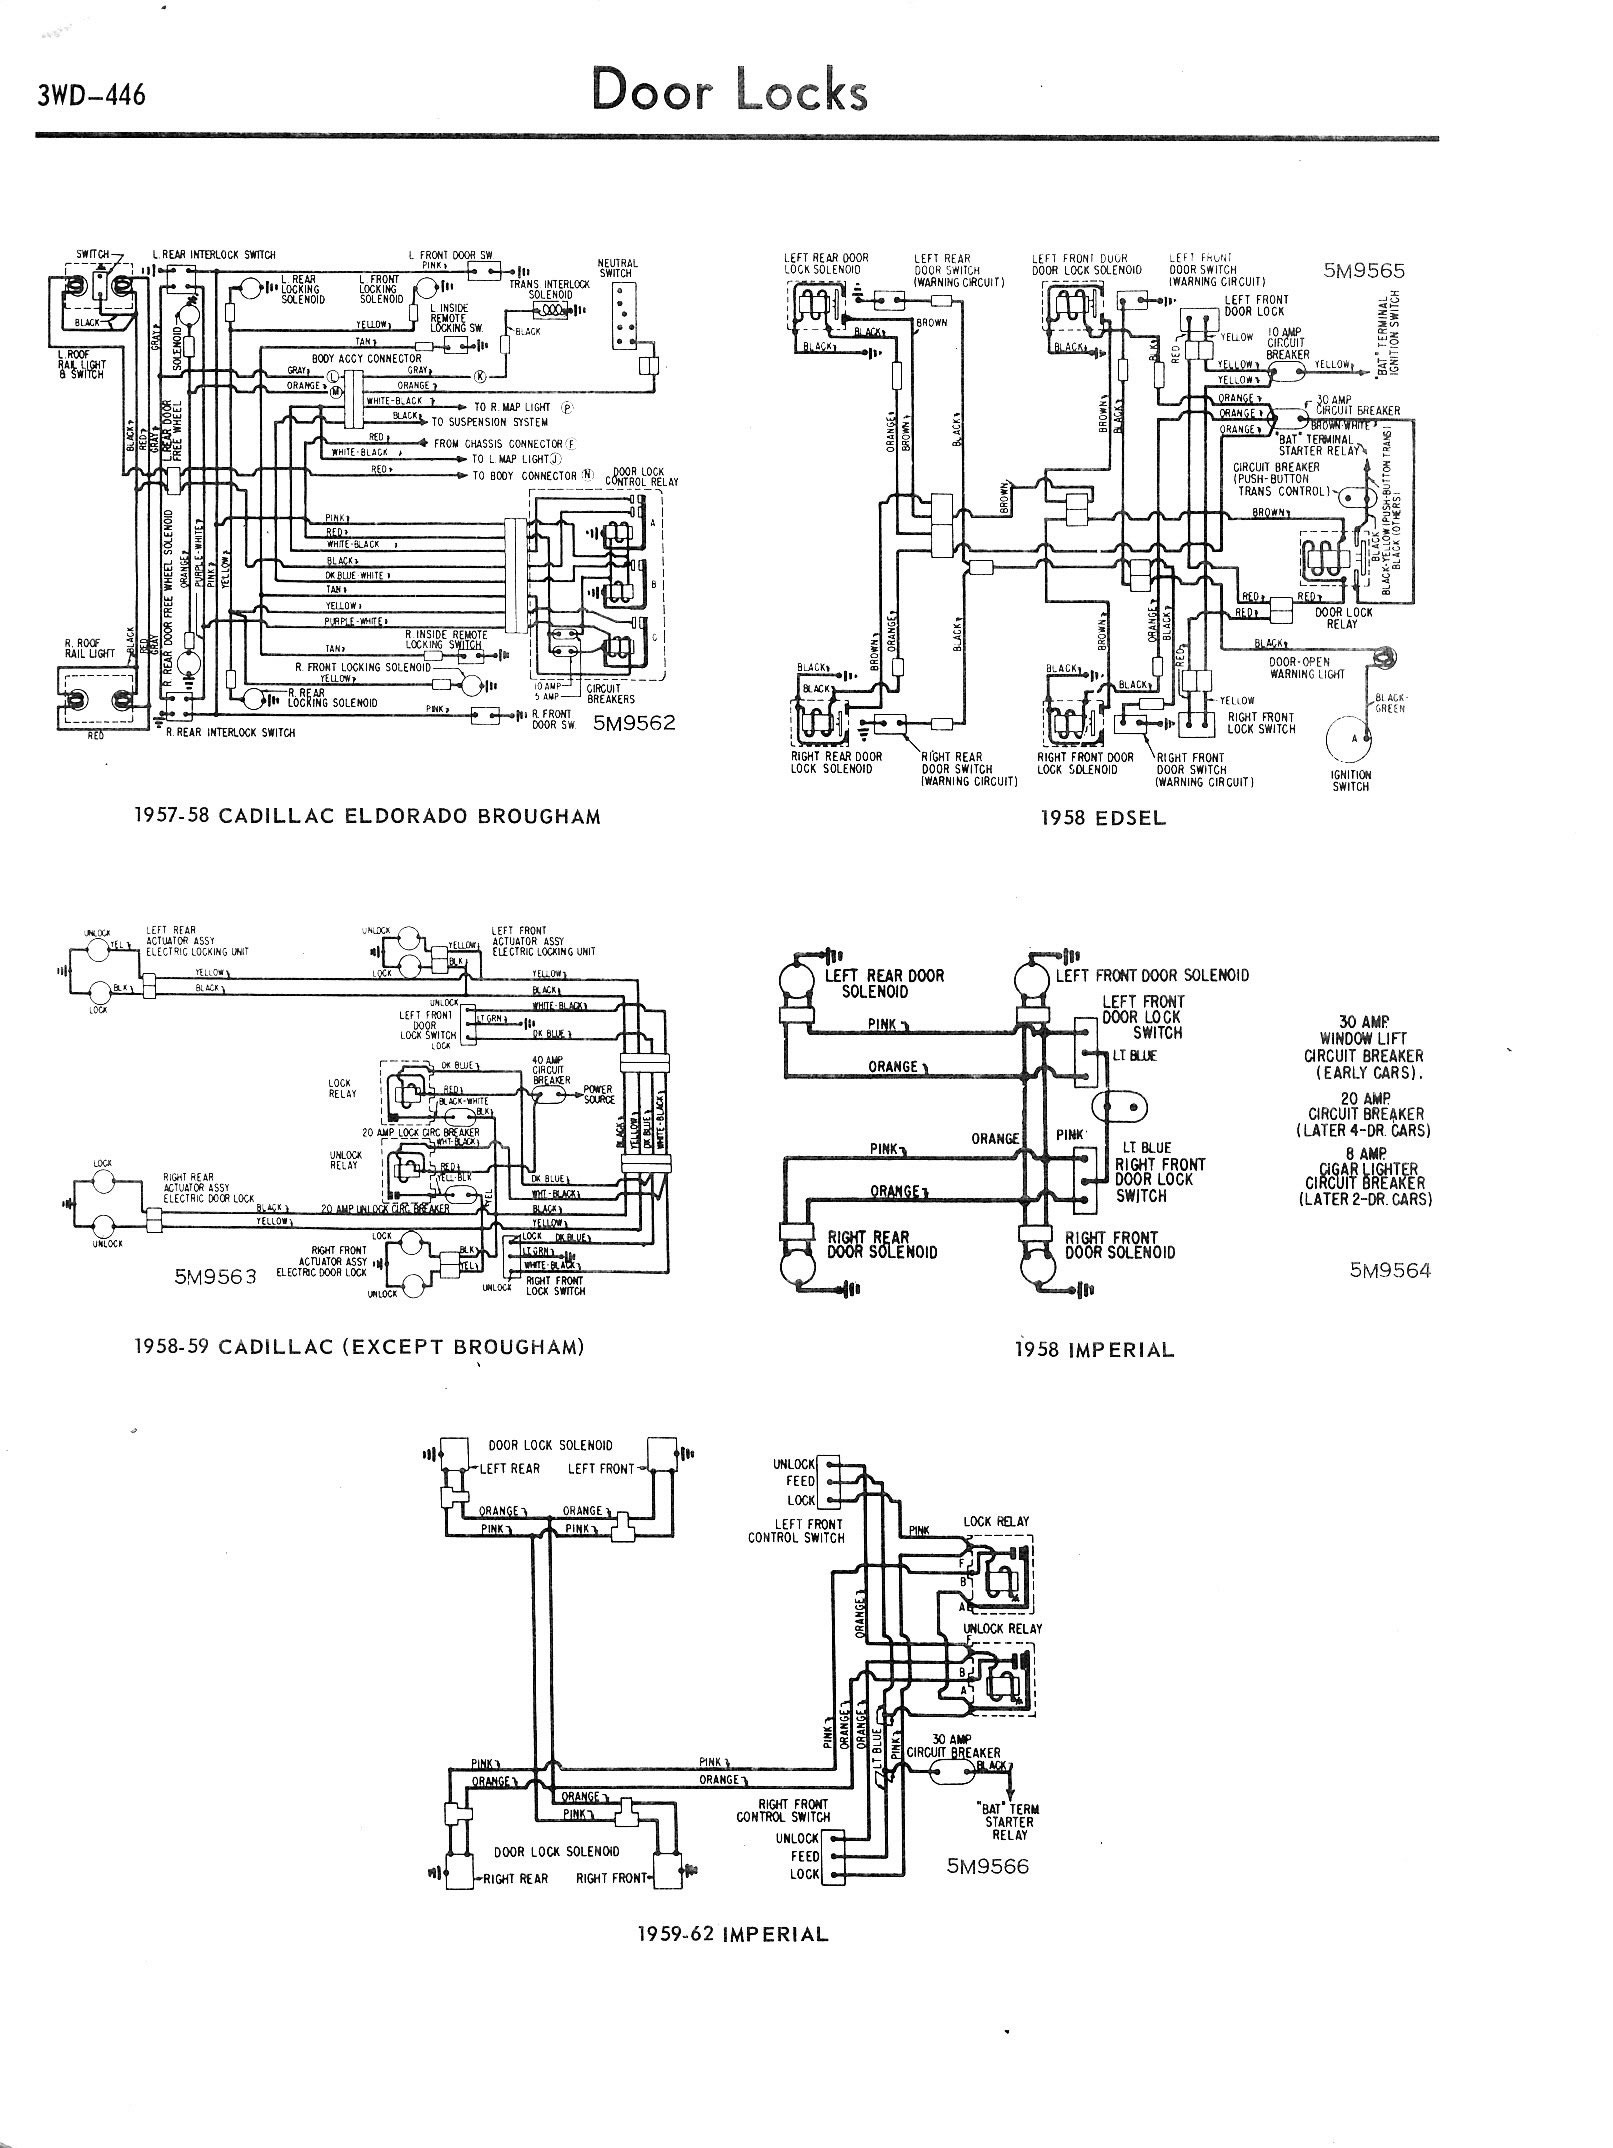 3WD-446_jpg Accessory Wiring Diagram on